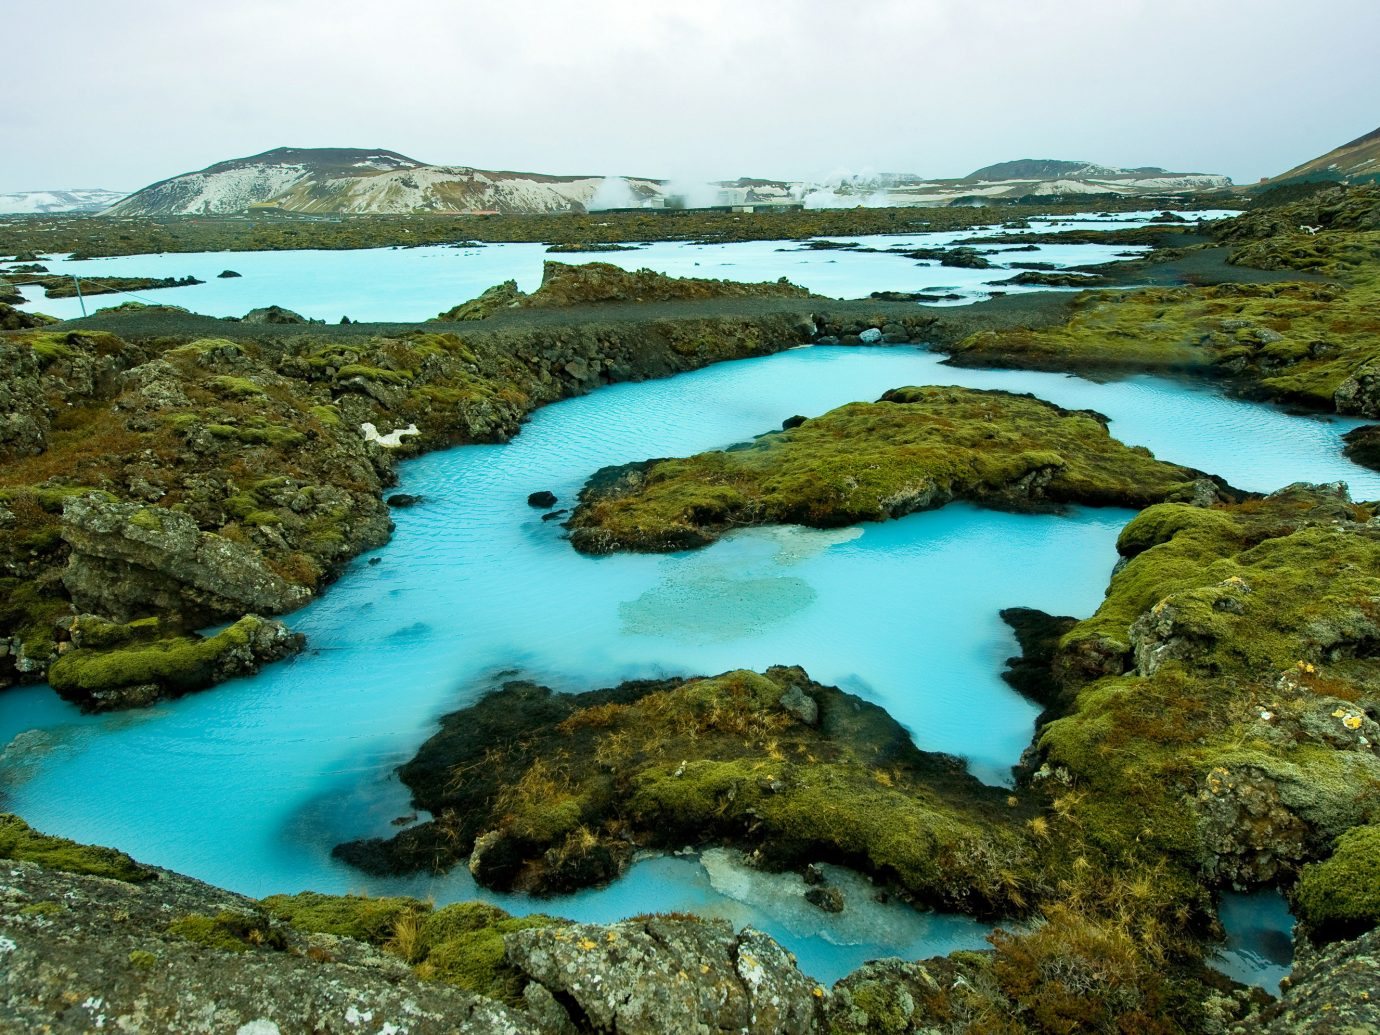 Hotels Iceland Trip Ideas water sky rock grass outdoor Nature landform geographical feature body of water natural environment rocky Coast loch tarn Sea landscape reflection aerial photography Lake crater lake stream national park surrounded pond hillside